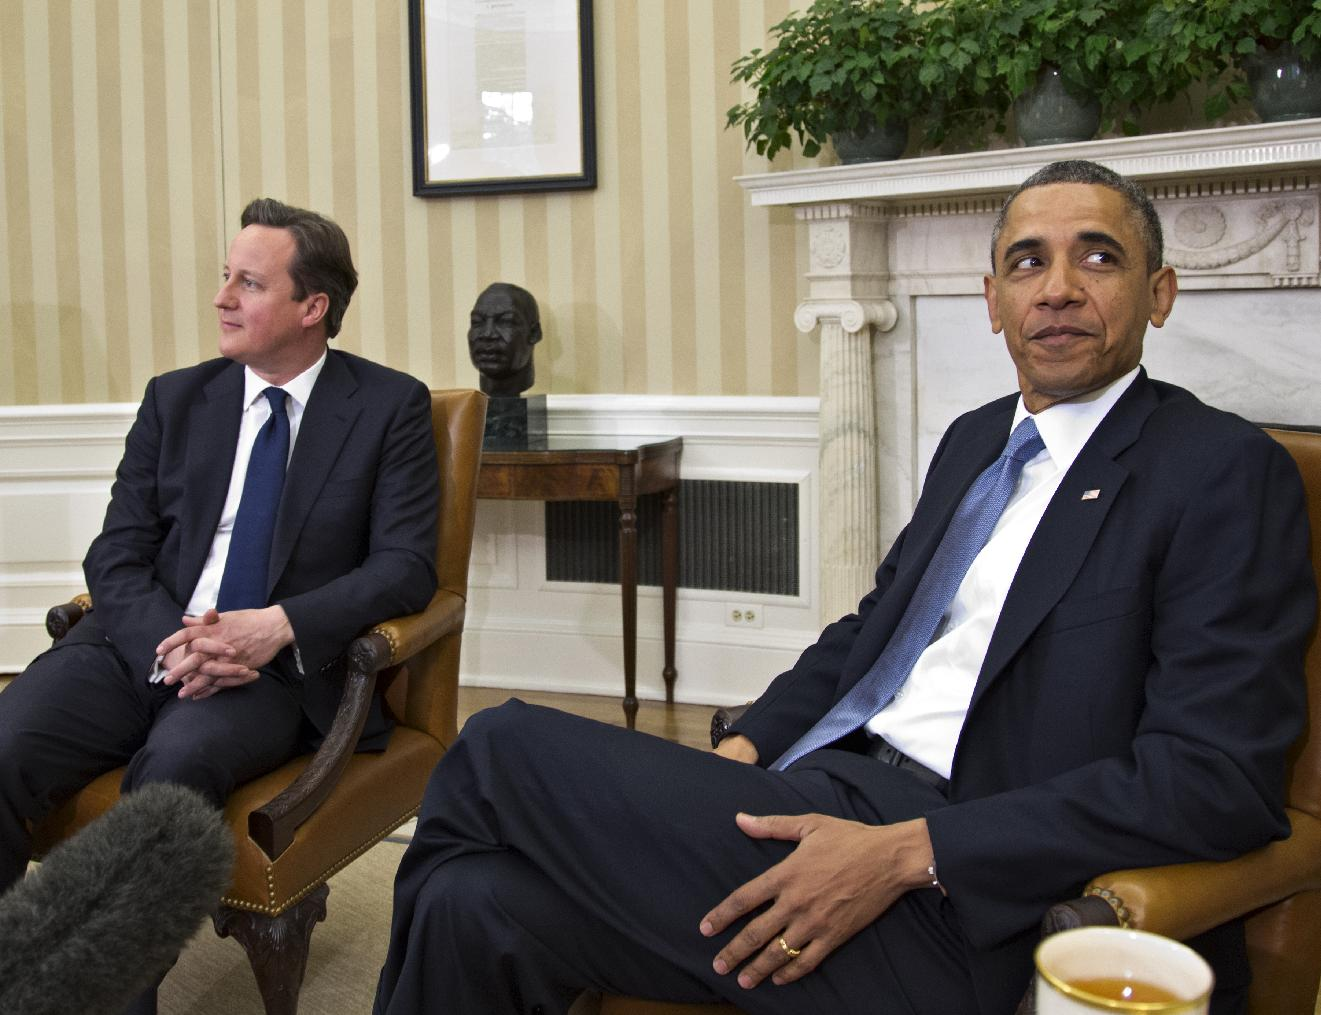 President Barack Obama and British Prime Minister David Cameron in the Oval Office on Monday, May 13, 2013. (J. Scott Applewhite/AP)